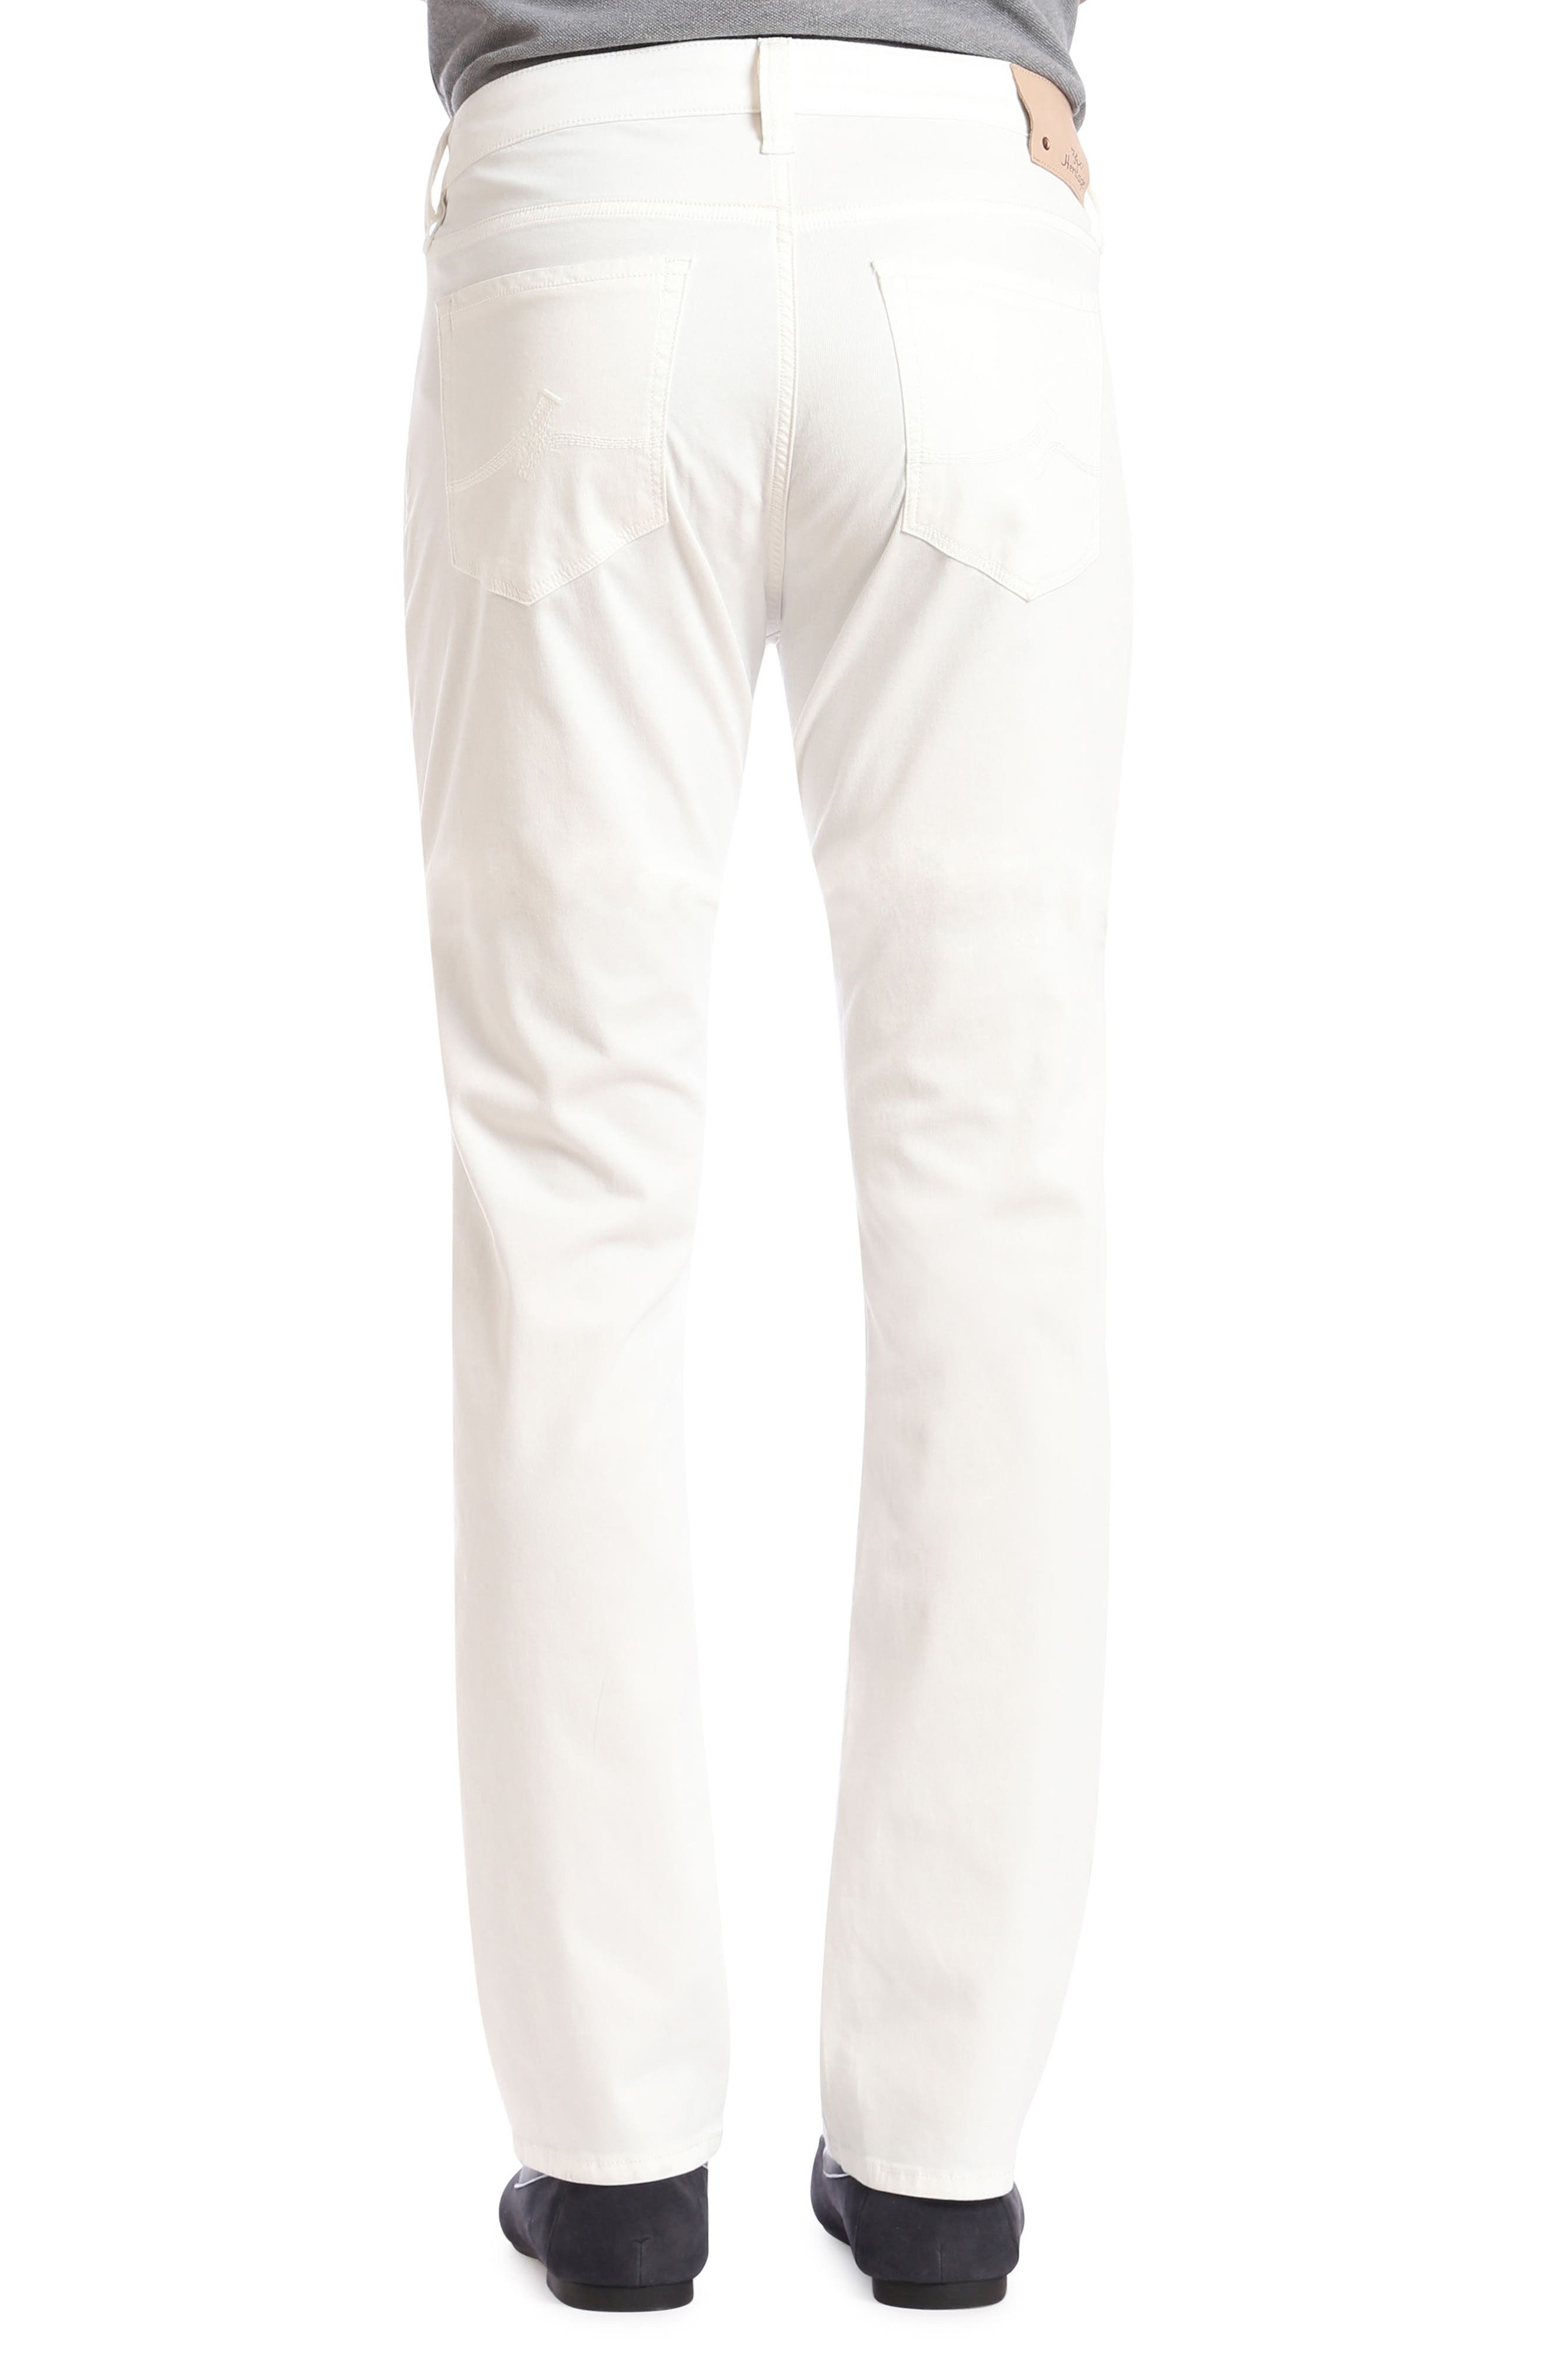 Charisma Relaxed Fit Jeans,                             Alternate thumbnail 2, color,                             Natural Fine Twill